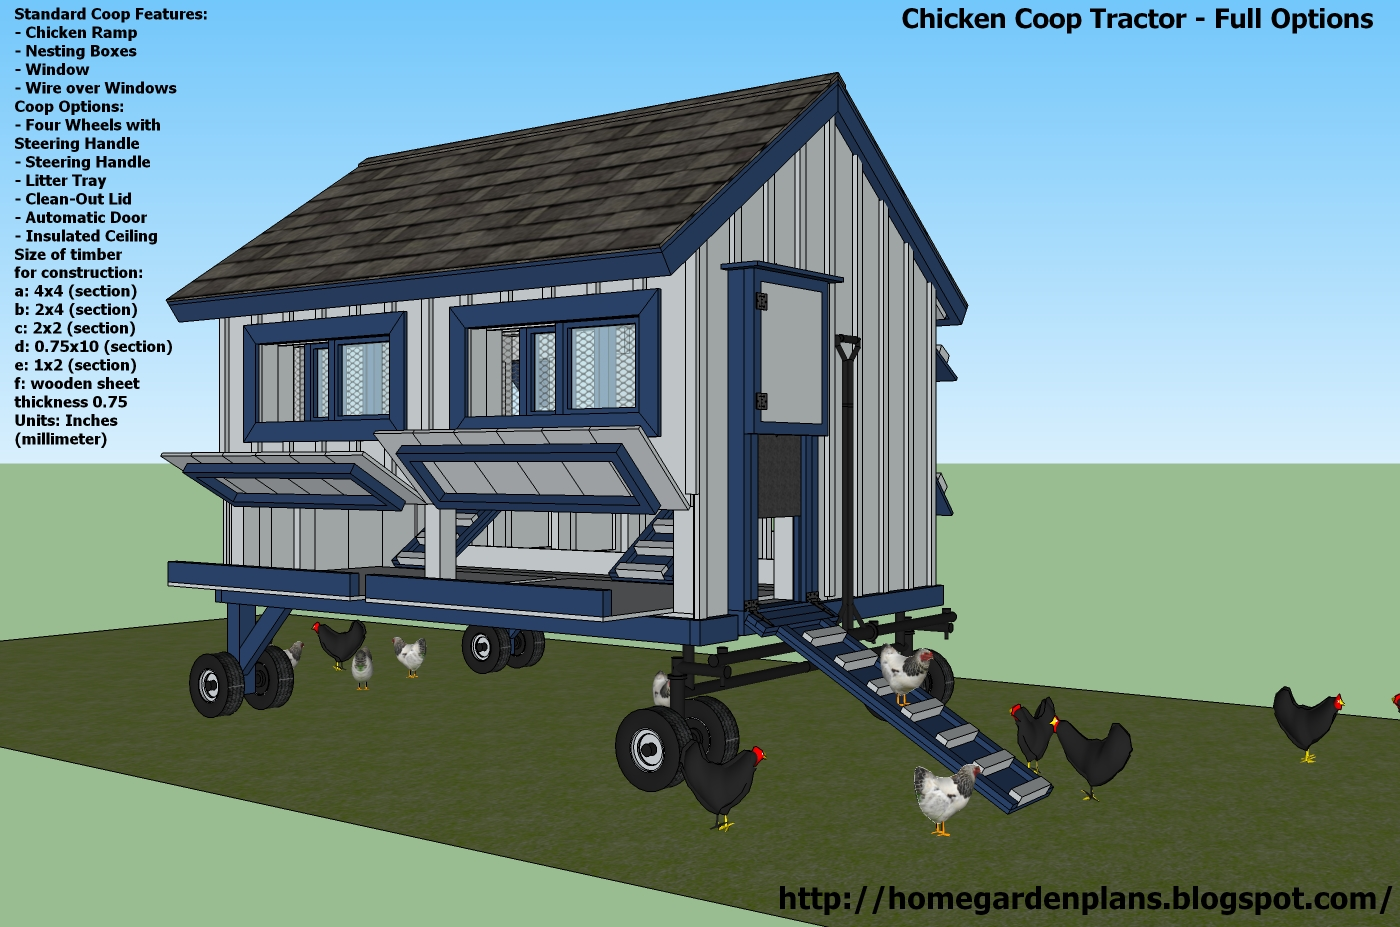 Home Garden Plans T300 Chicken Coop Plans Free Chicken Coop Design Free Notice